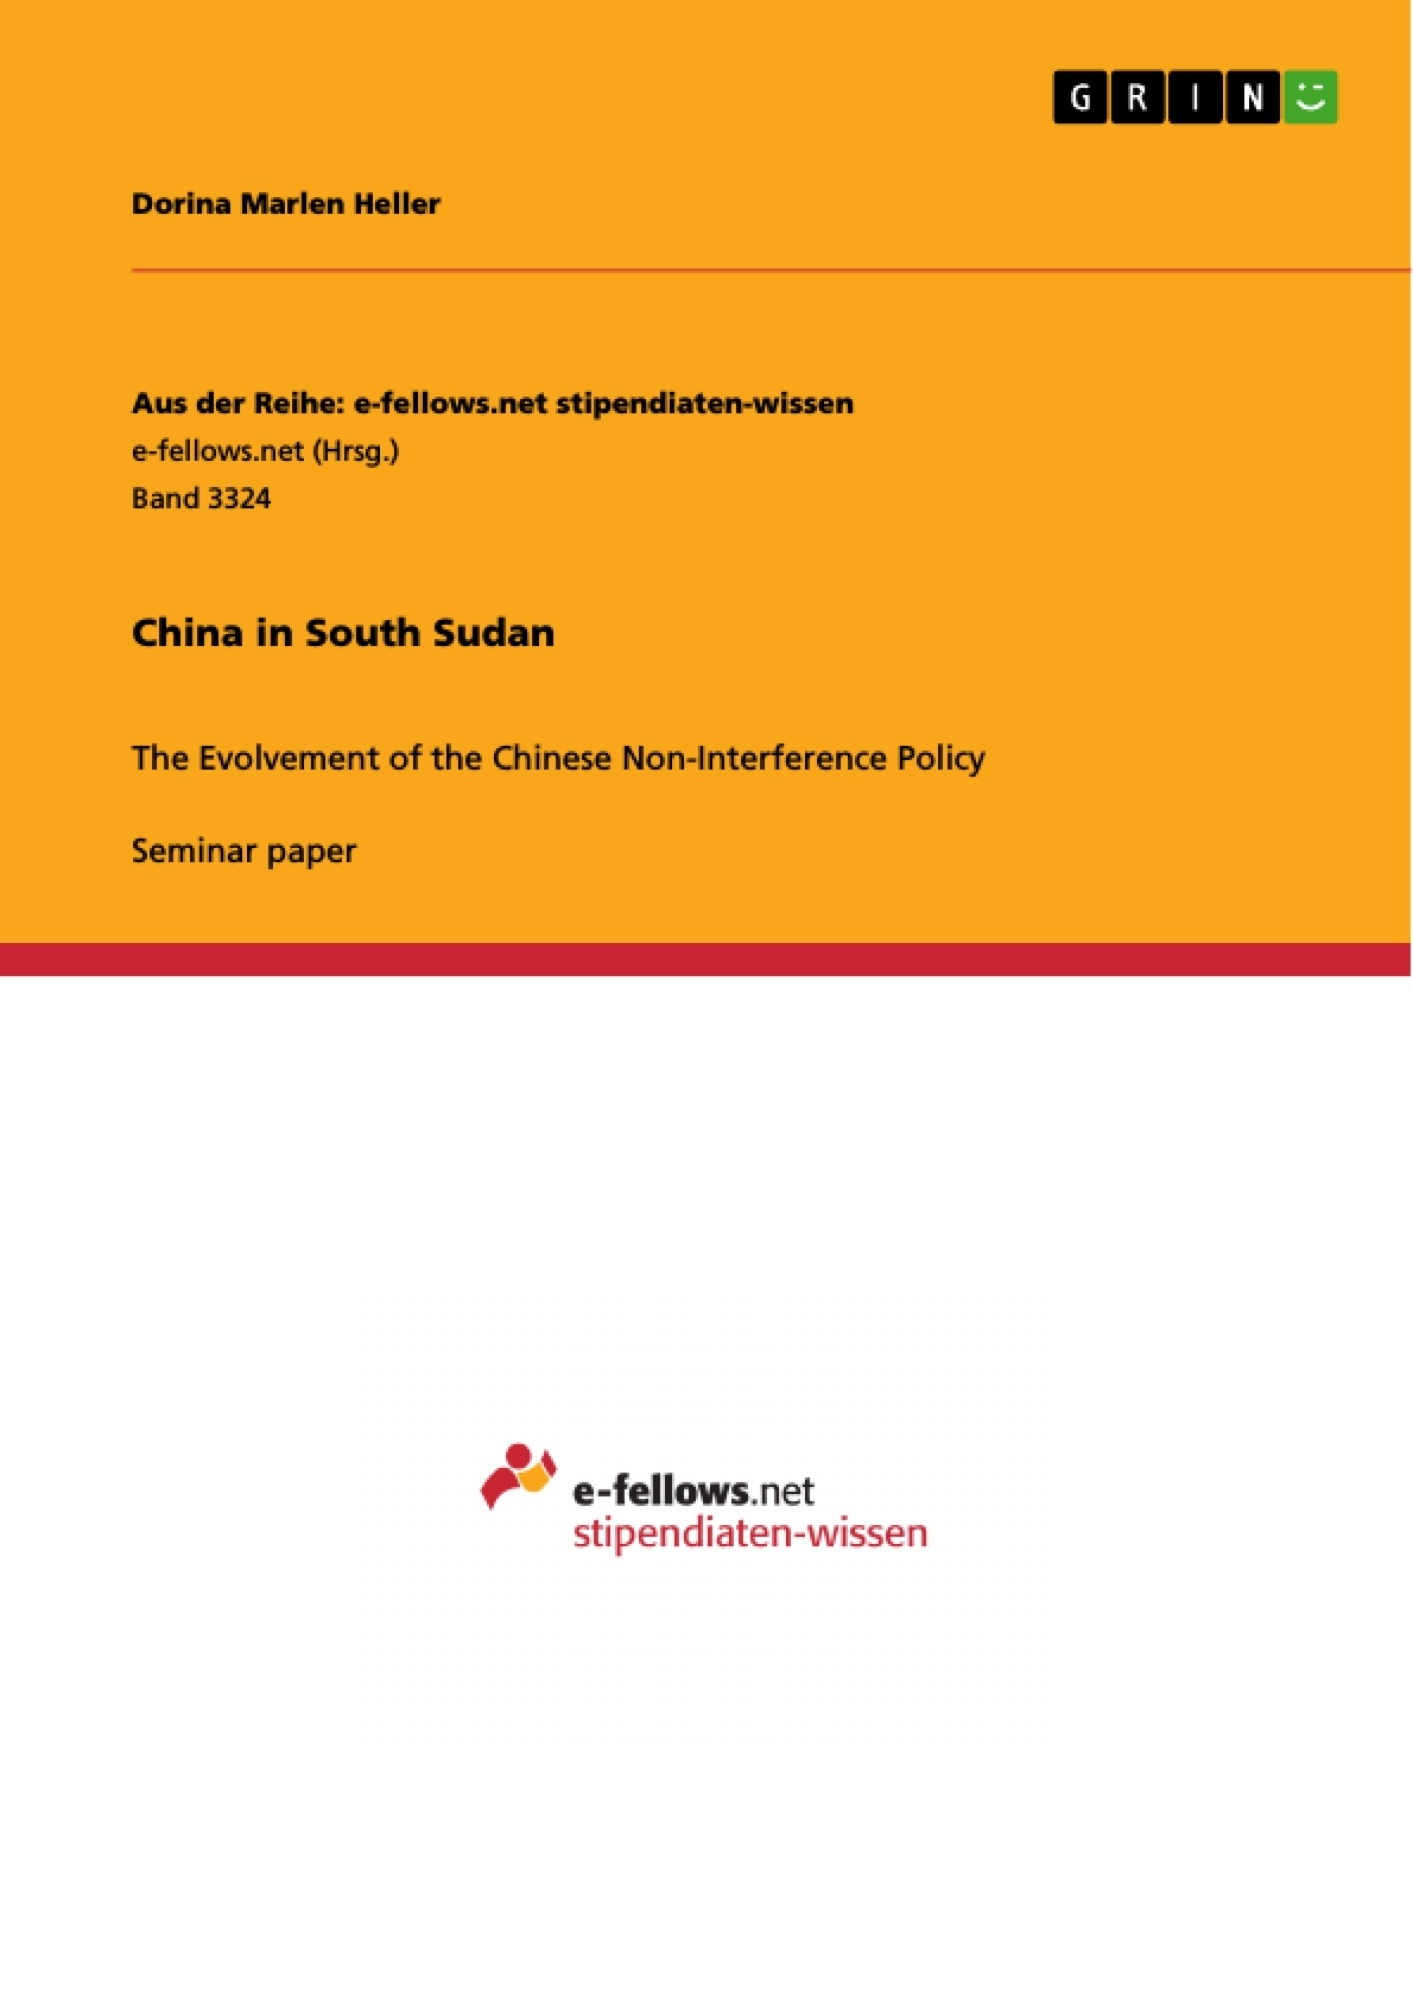 Title: China in South Sudan